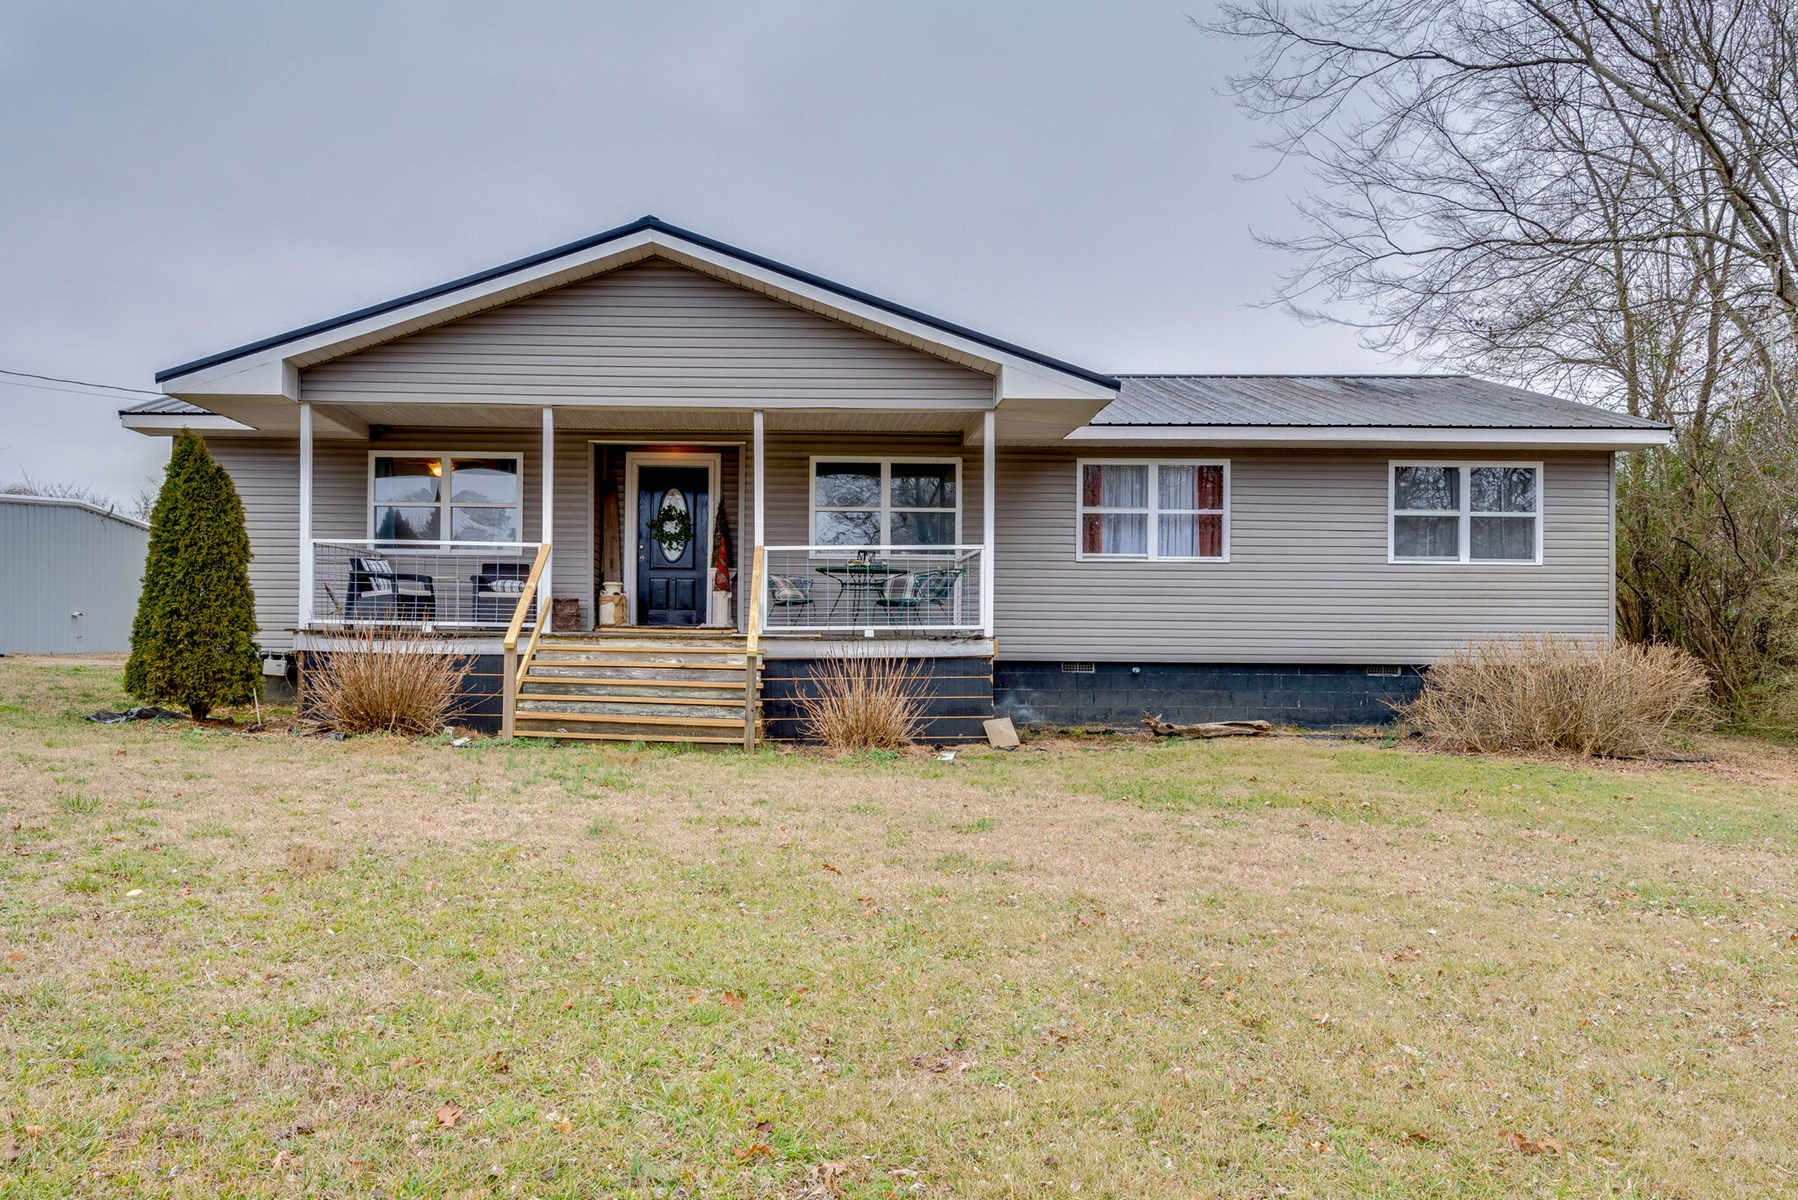 Home in Town Situated on Acreage Lot in Hohenwald, TN